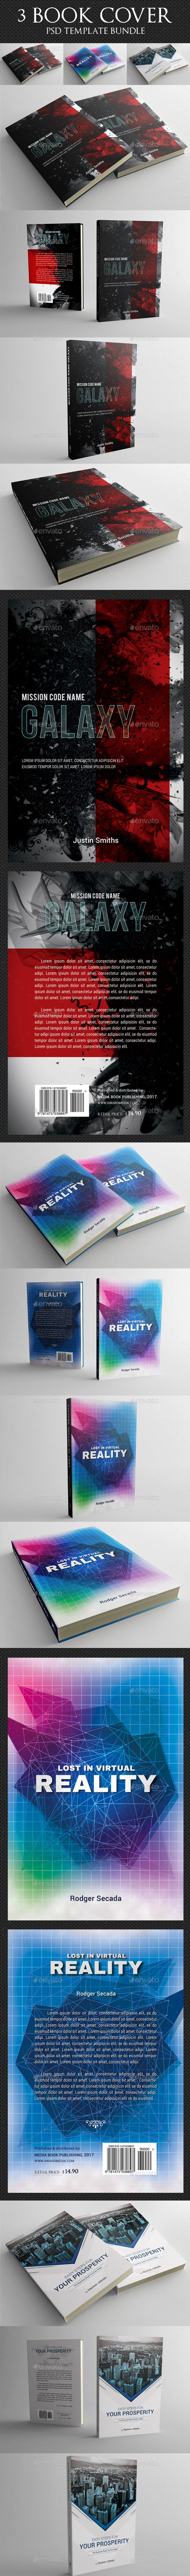 3 in 1 Book Cover Template Bundle 09